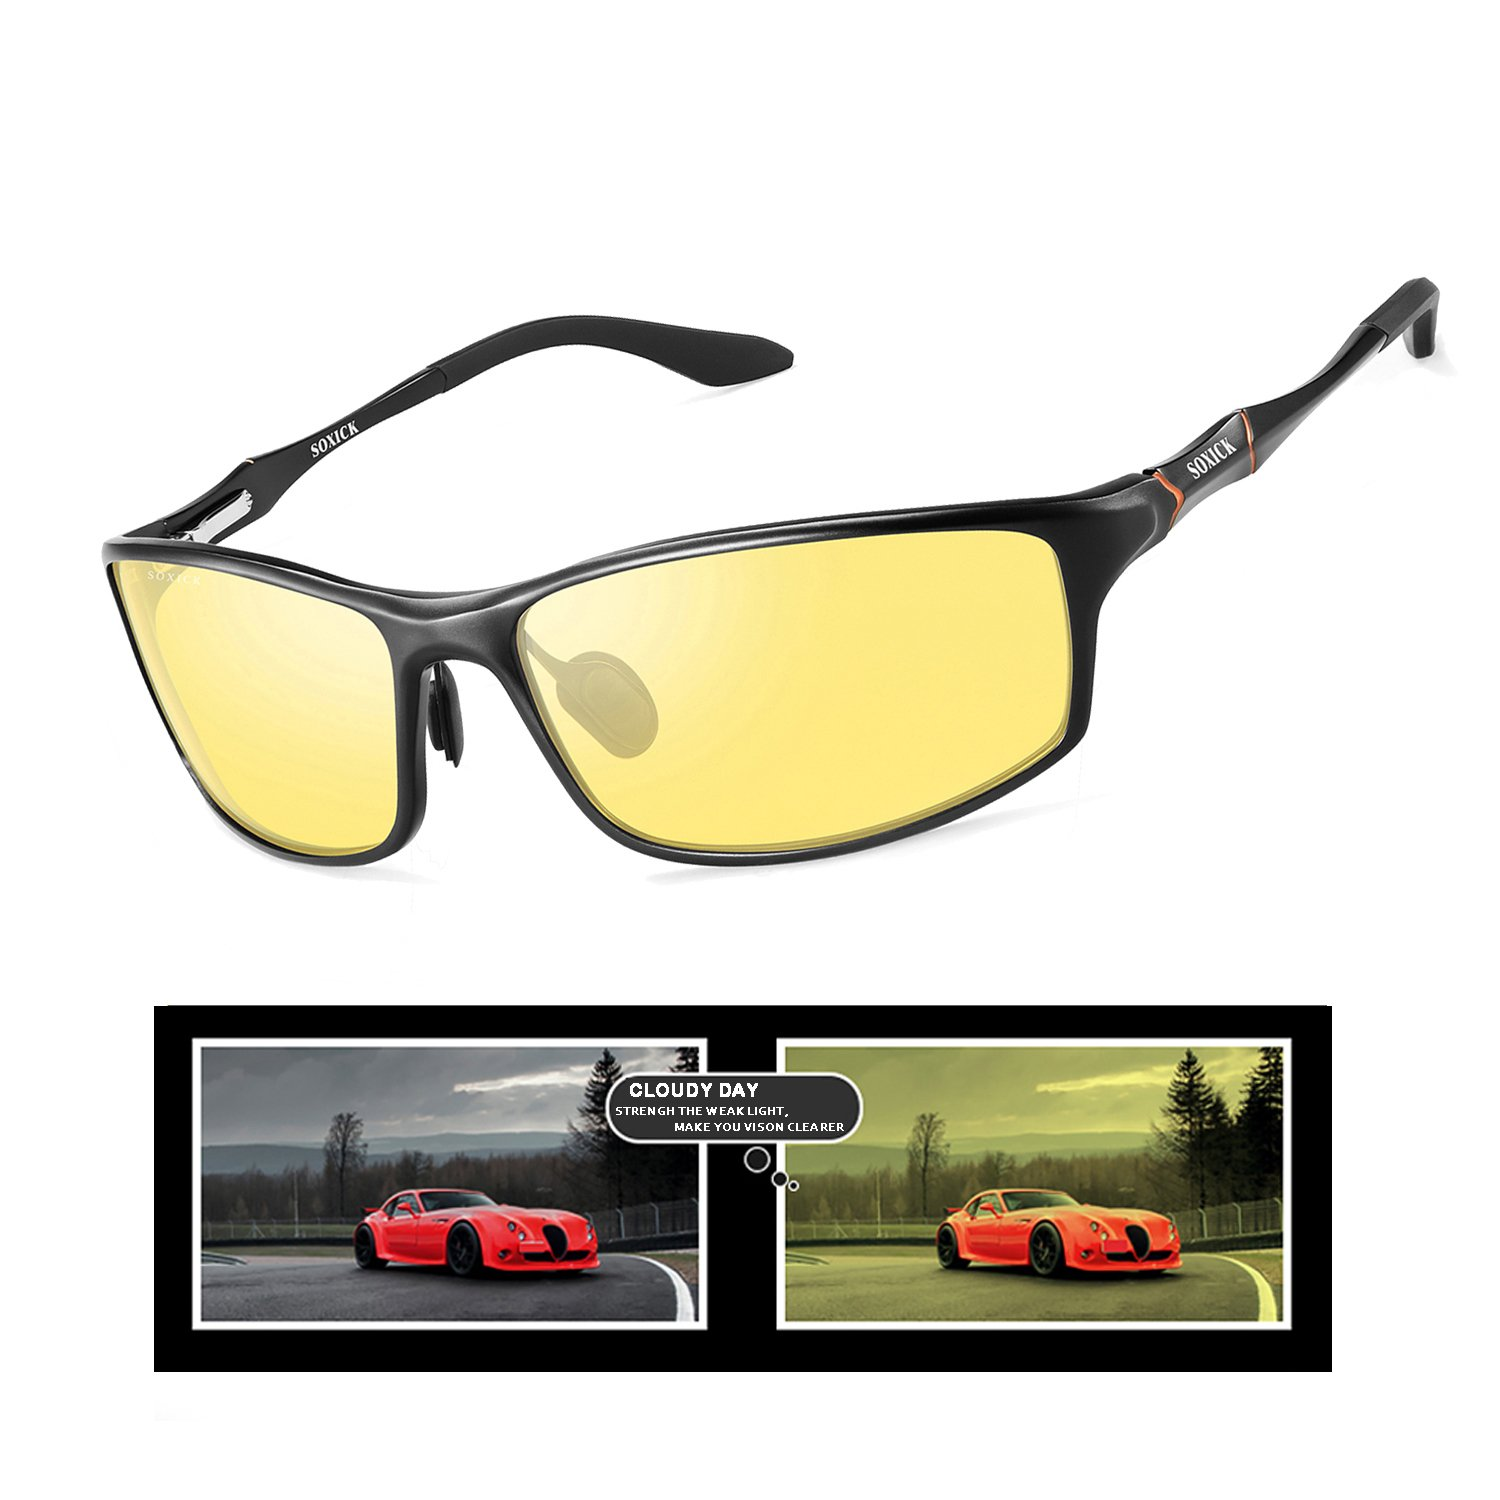 SOXICK Night Driving Glasses Polarized Safe Anti Glare Night Vision Glasses for Driving HD Yellow Lens